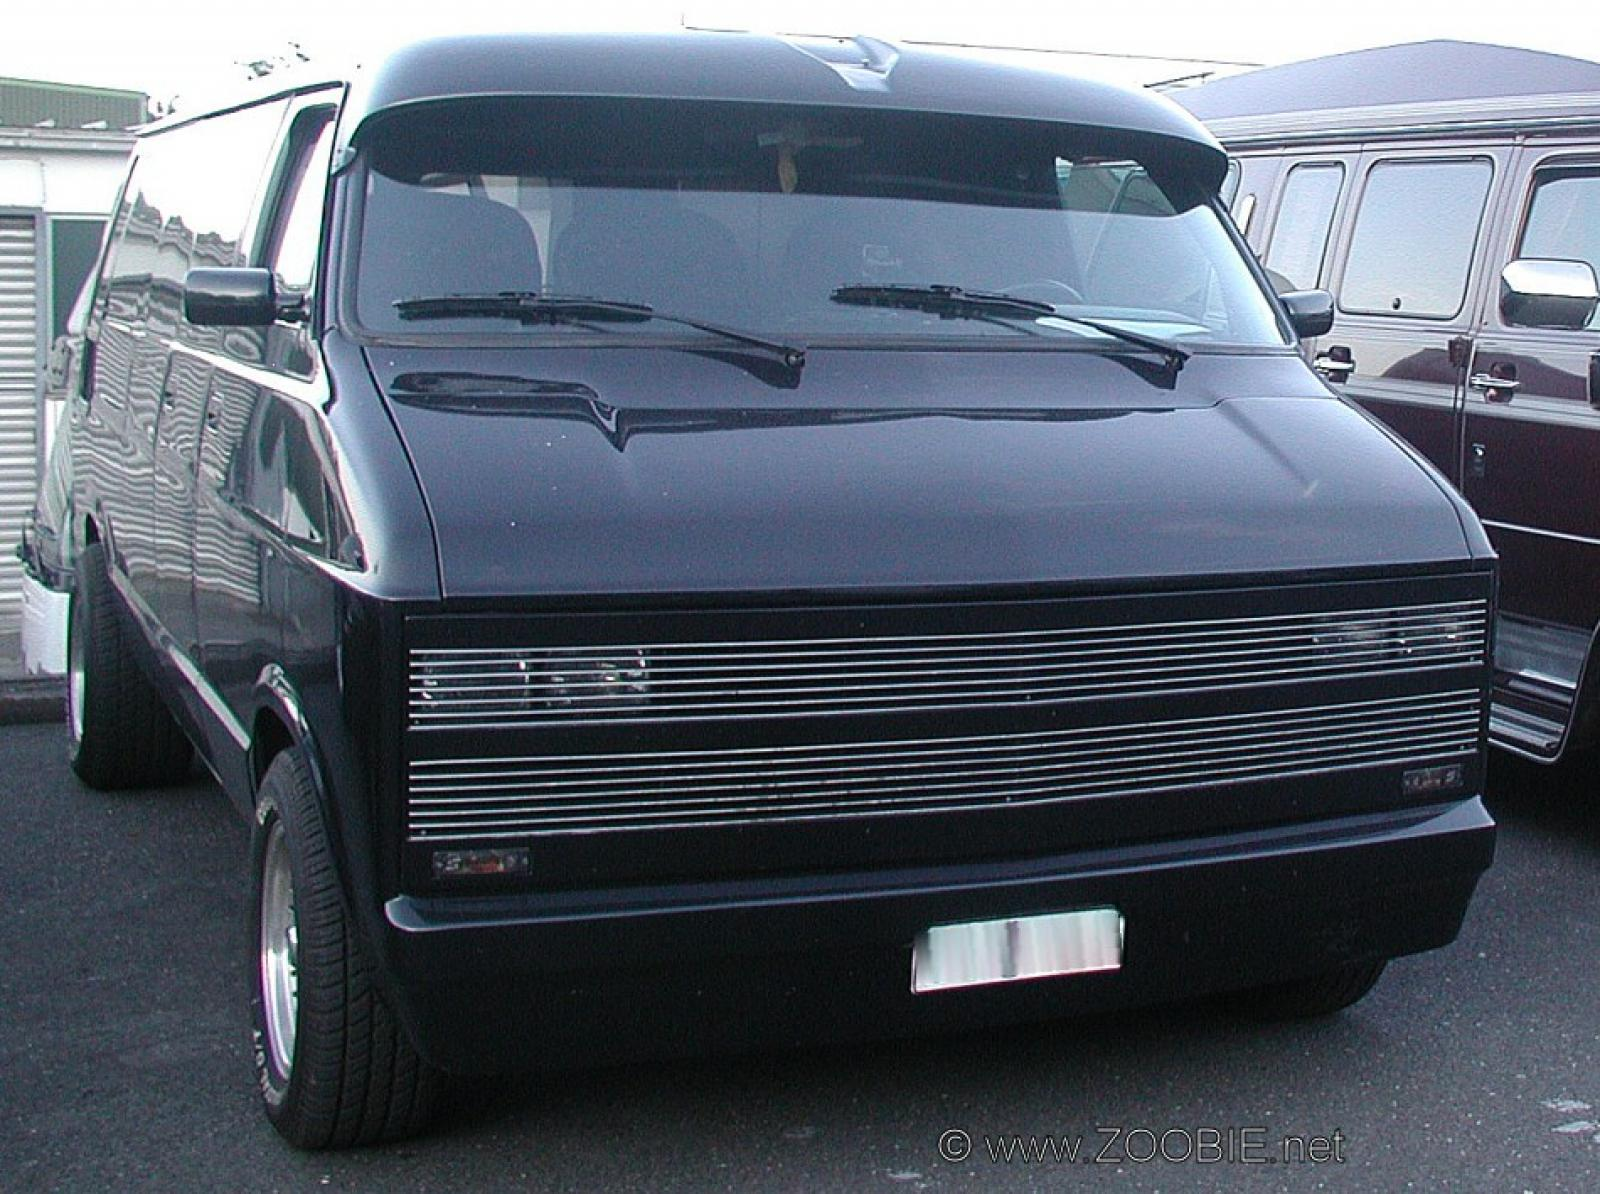 1992 Chevrolet Chevy Van - Information and photos - Zomb Drive